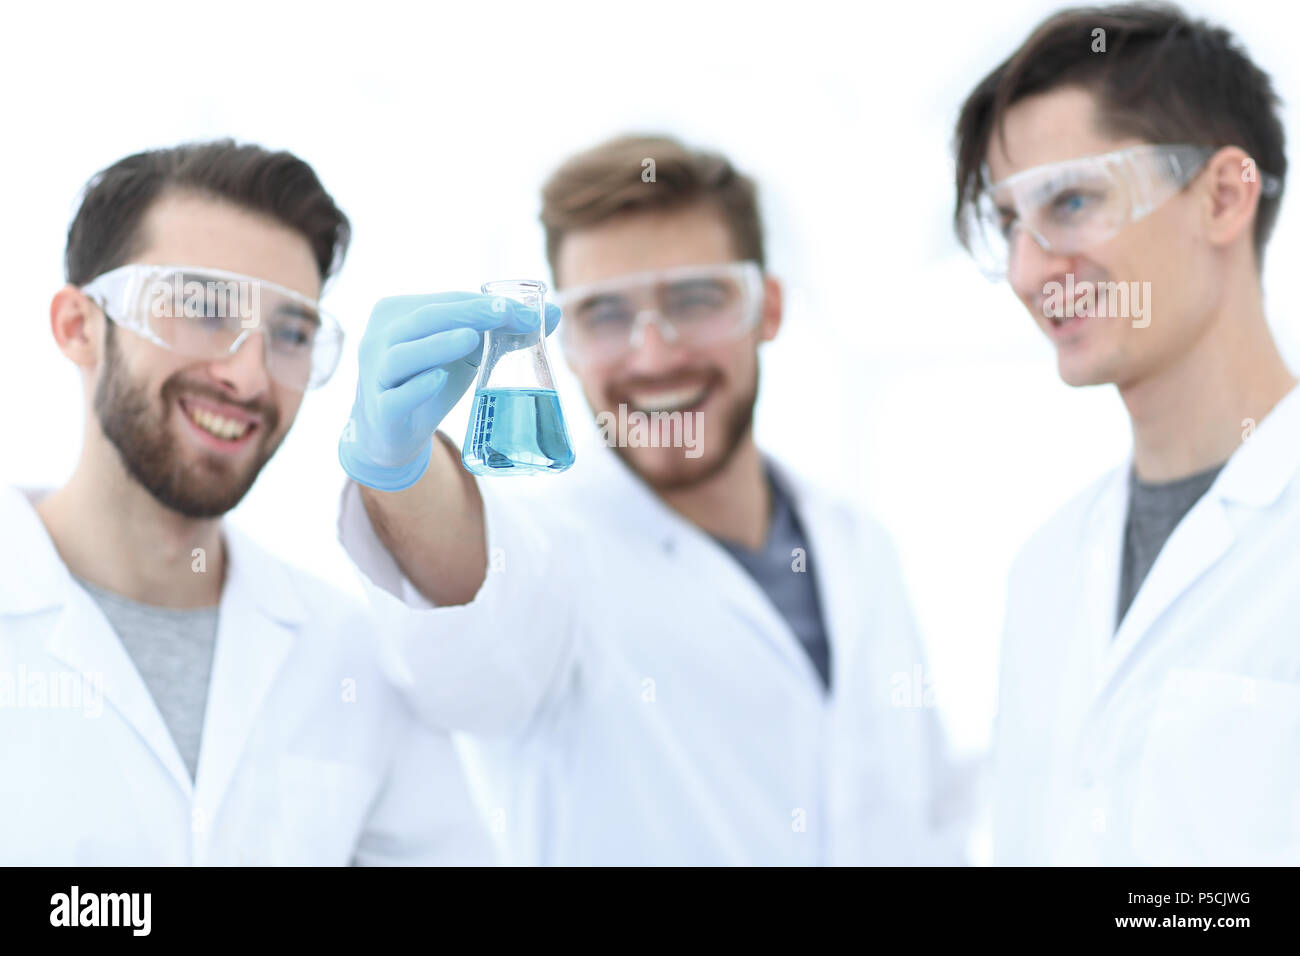 scientists rejoice at the result of their work. - Stock Image